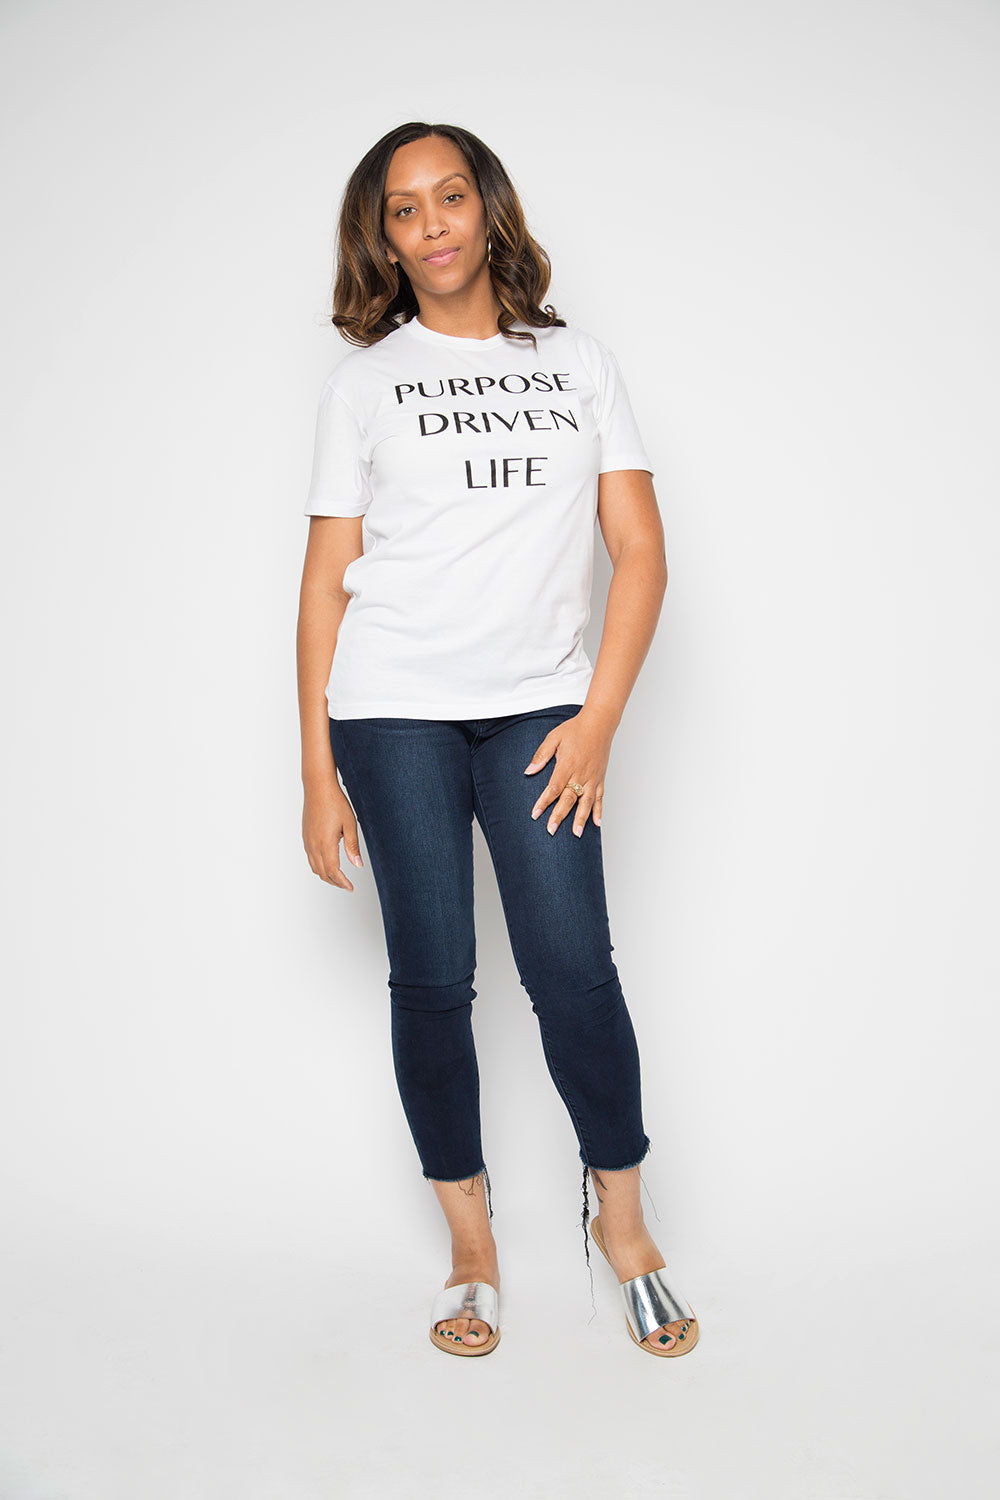 Purpose Driven Life Shirt in White - Trunk Series